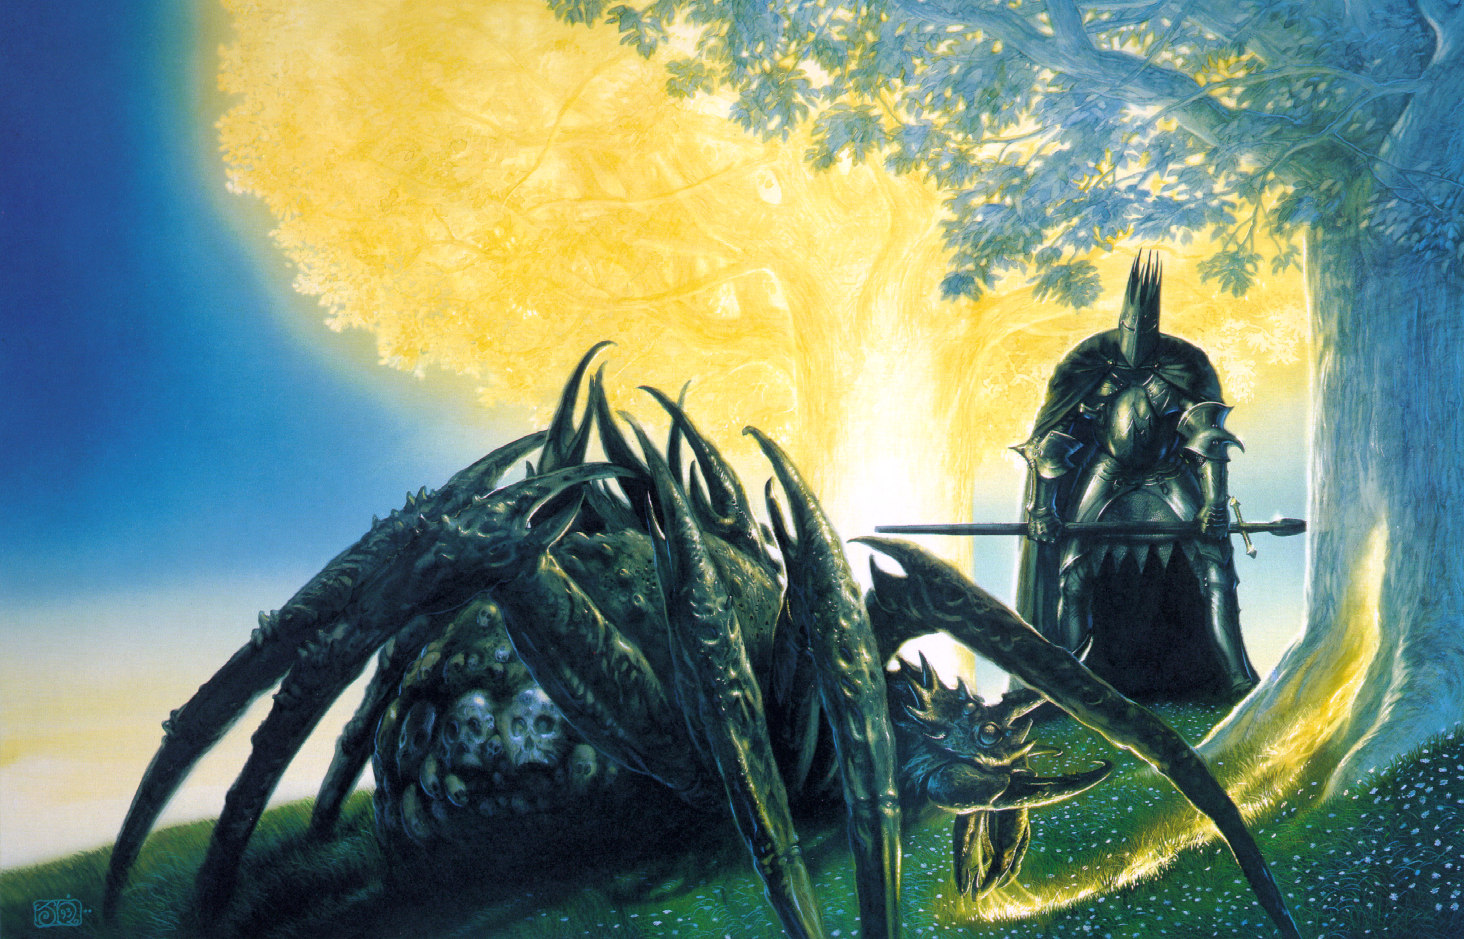 Melkor ou Morgoth